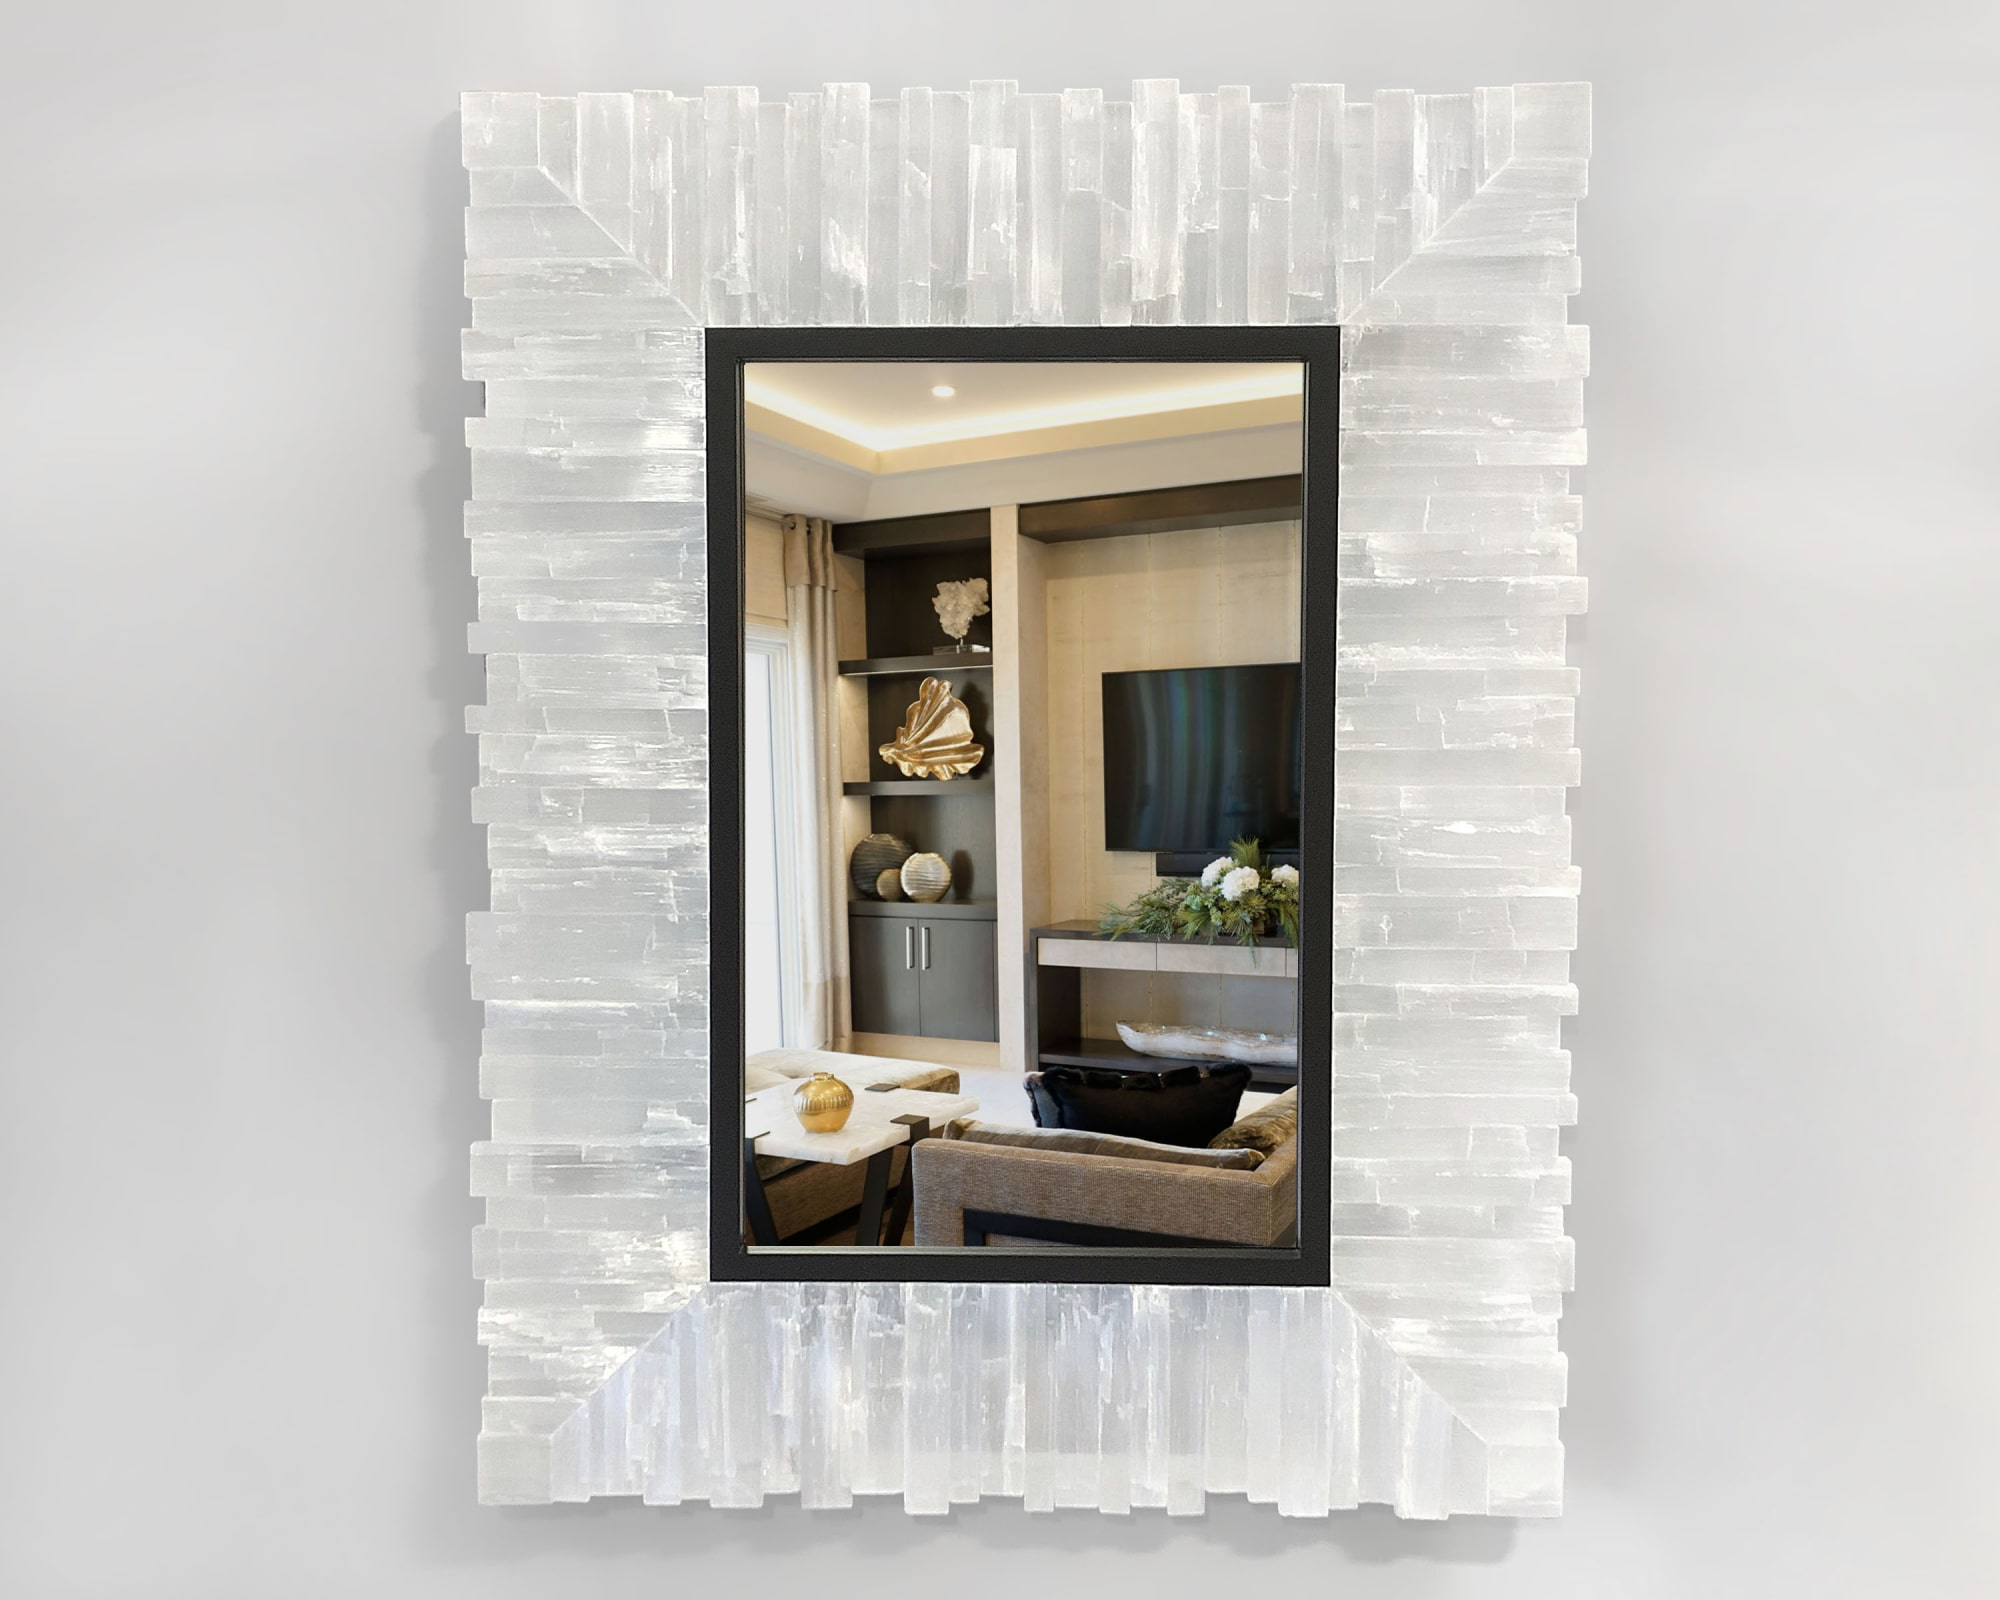 Wall Hangings by Ron Dier Design seen at Thomas Lavin Inc, West Hollywood - Selenite Mirror